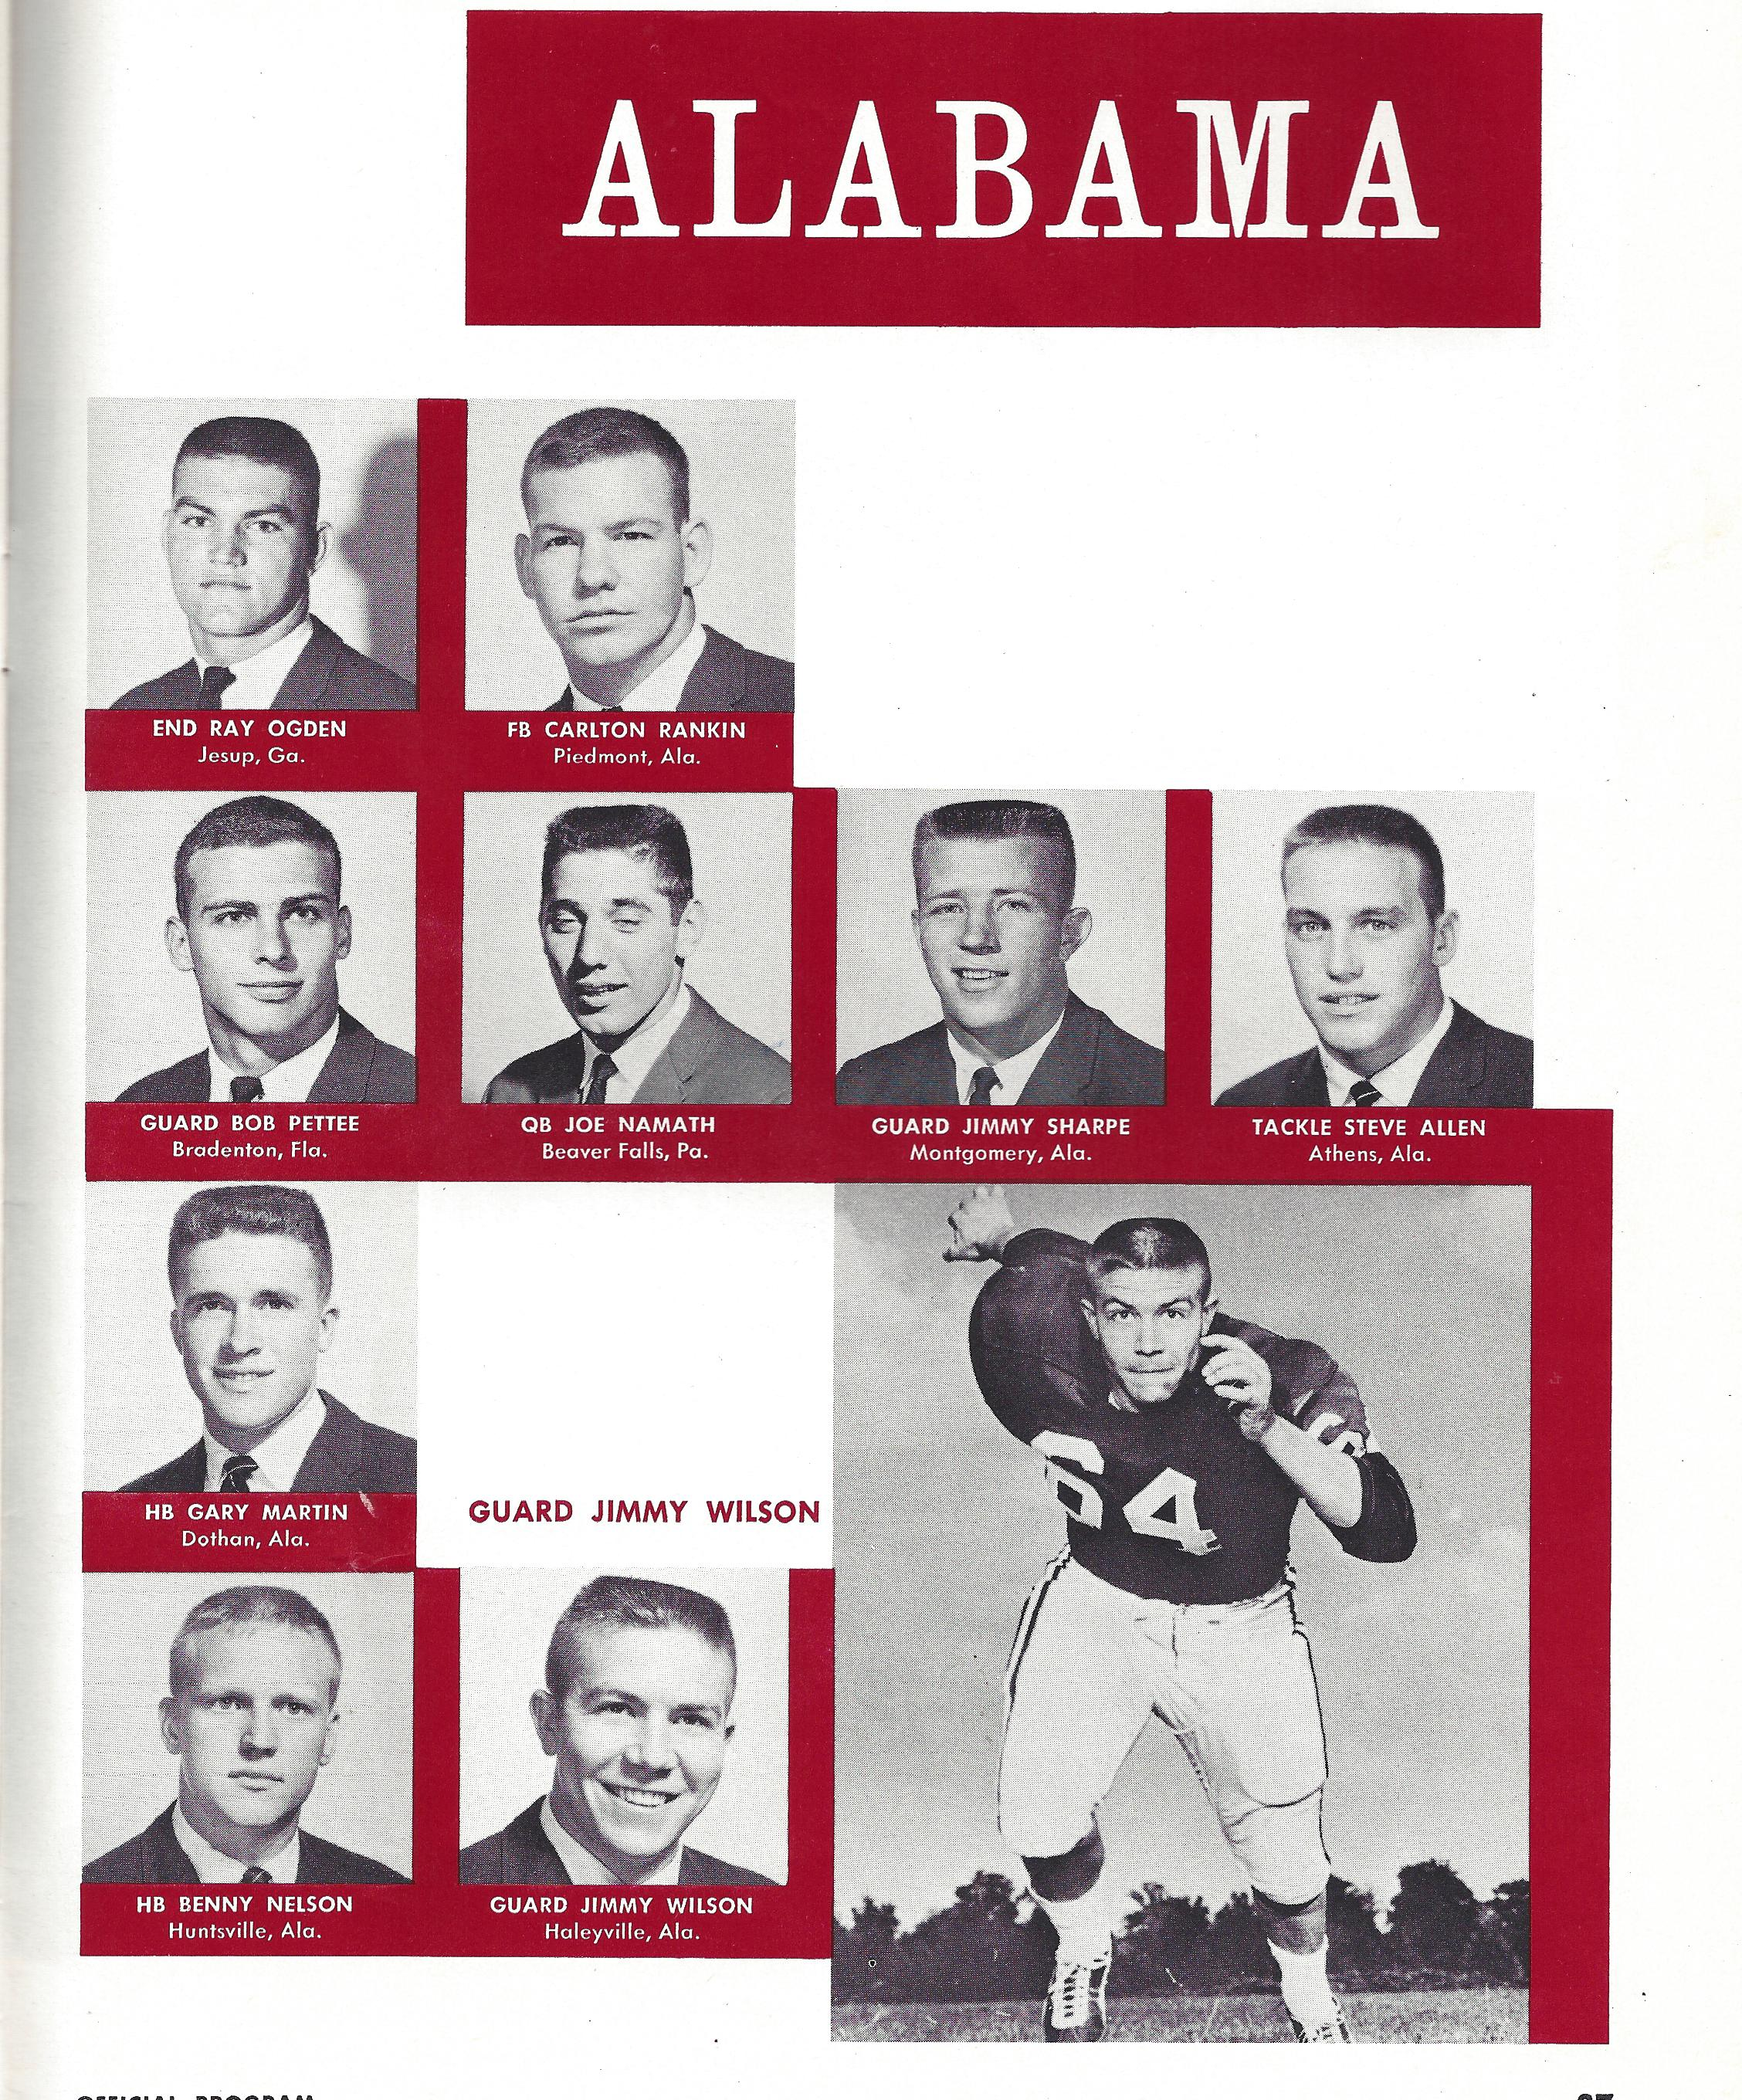 Crimson Tide coaches - Bama Central